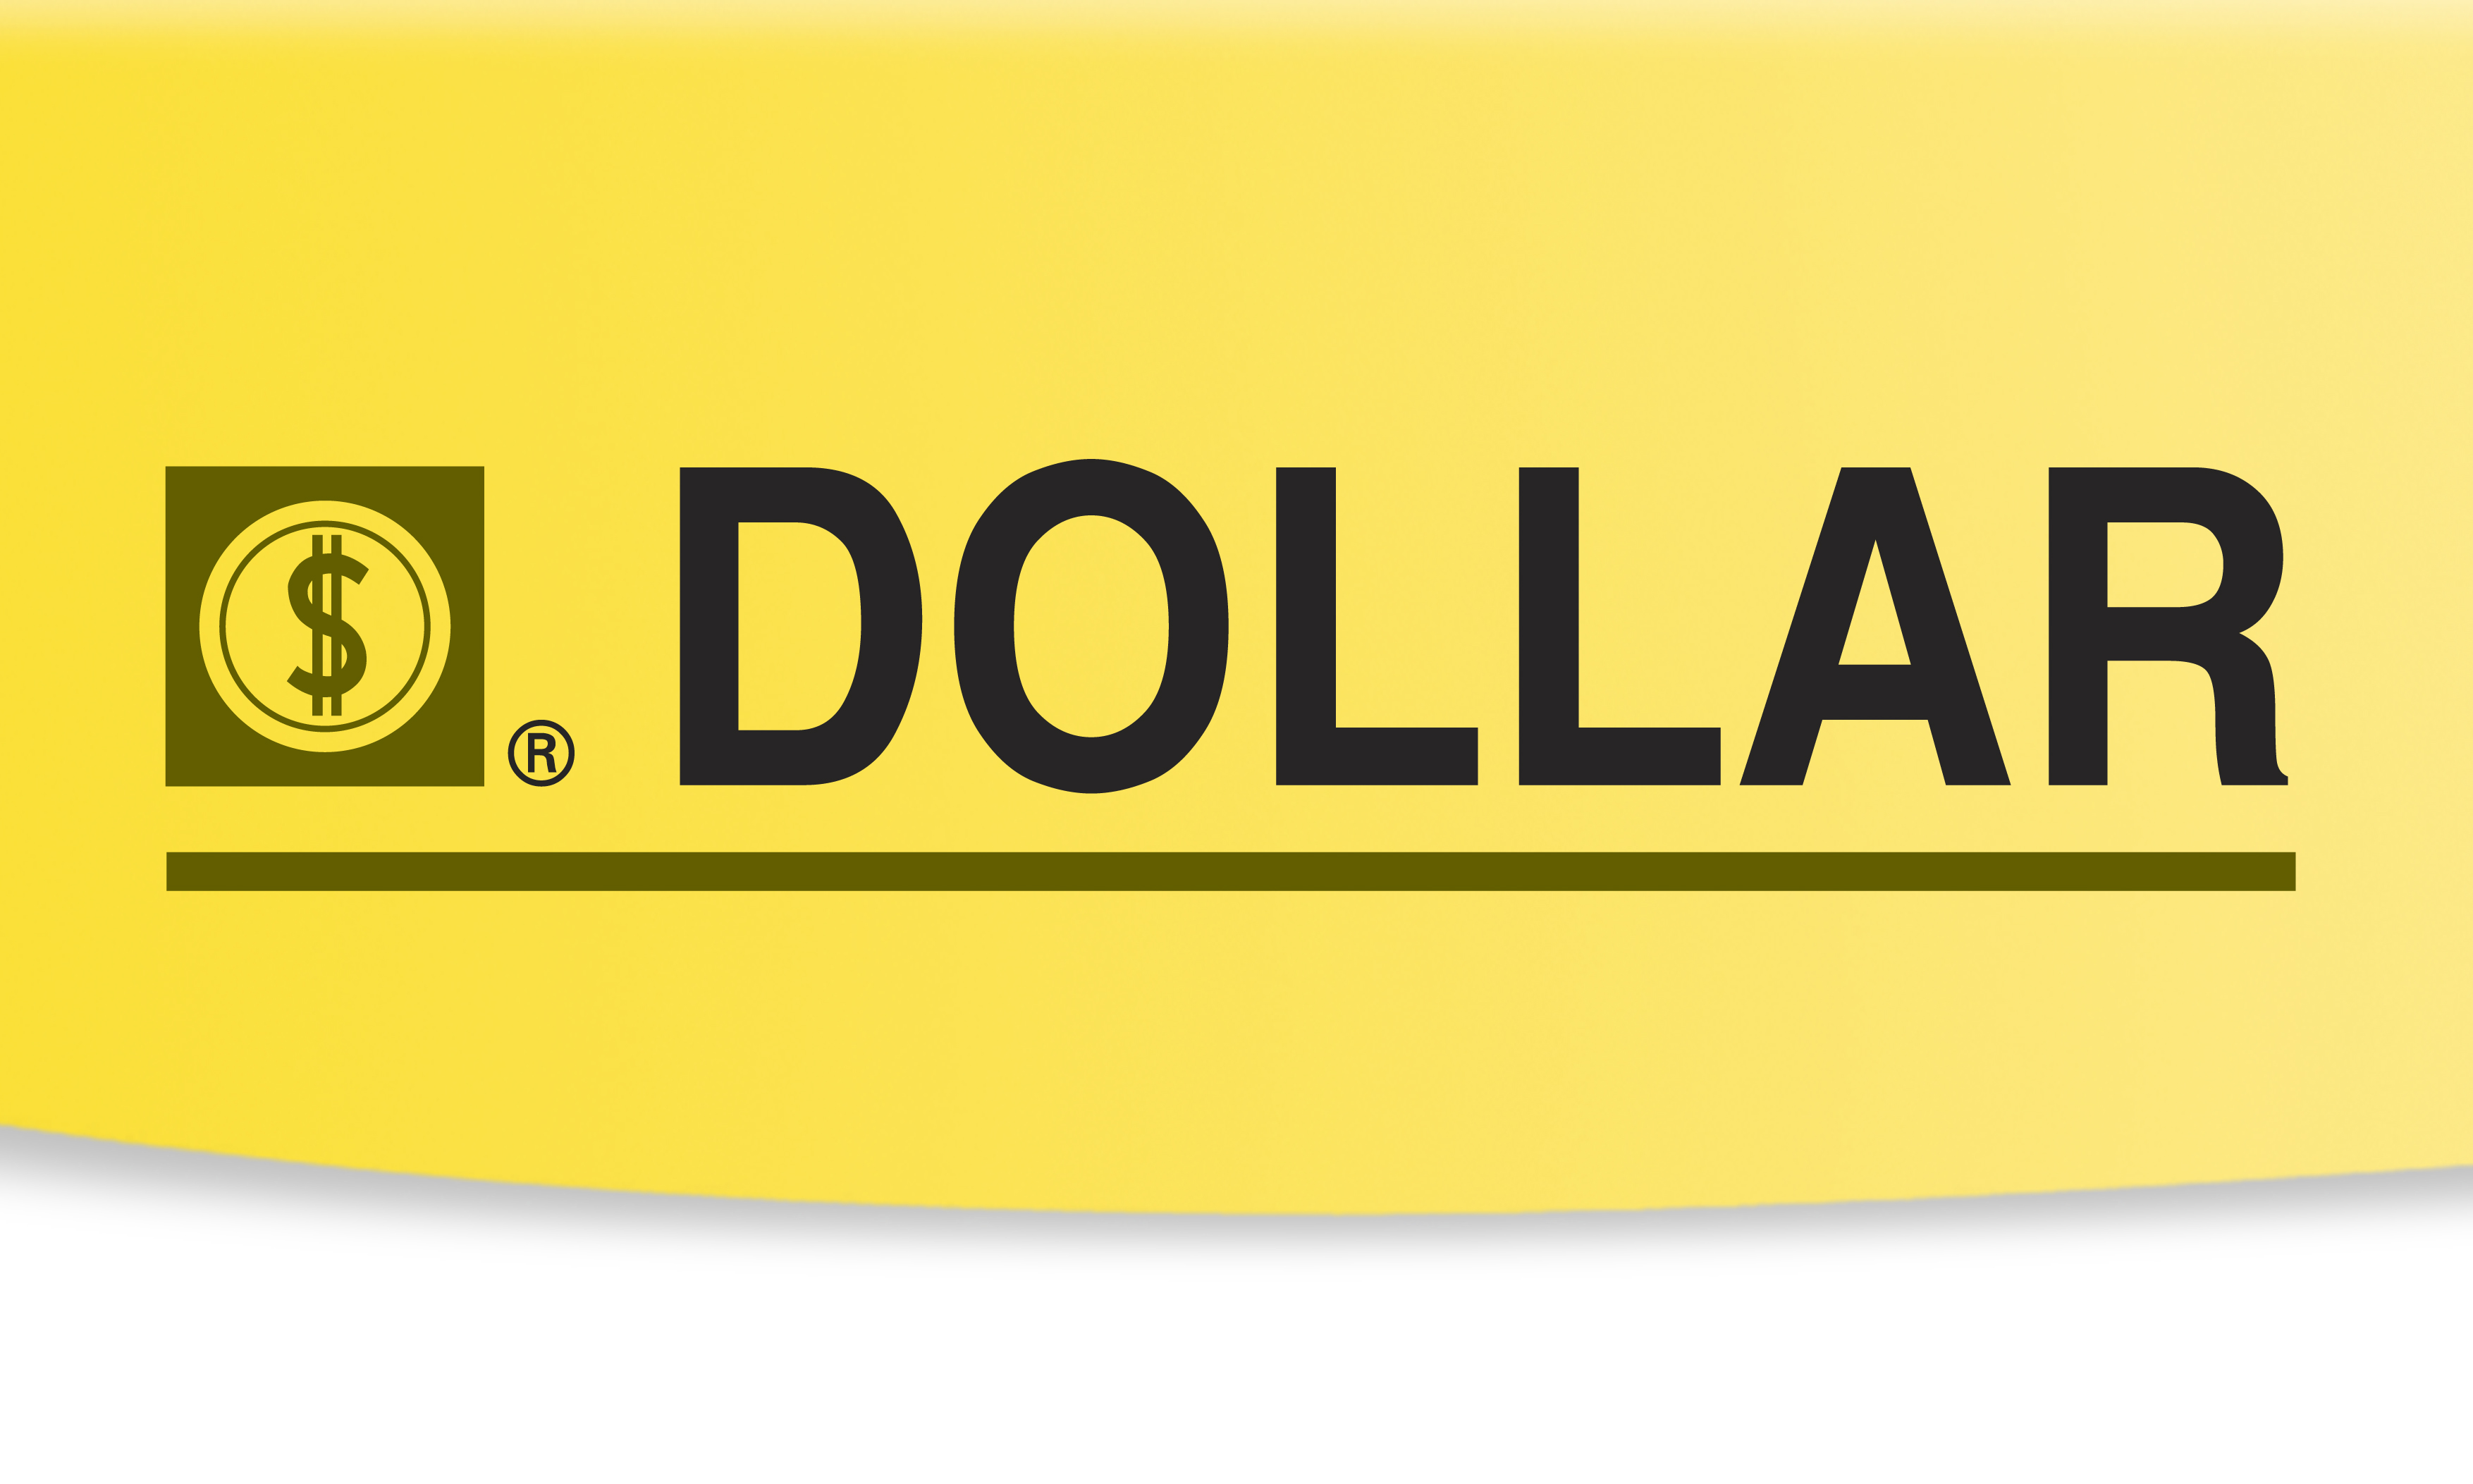 https://www.dollar-stationery.com/